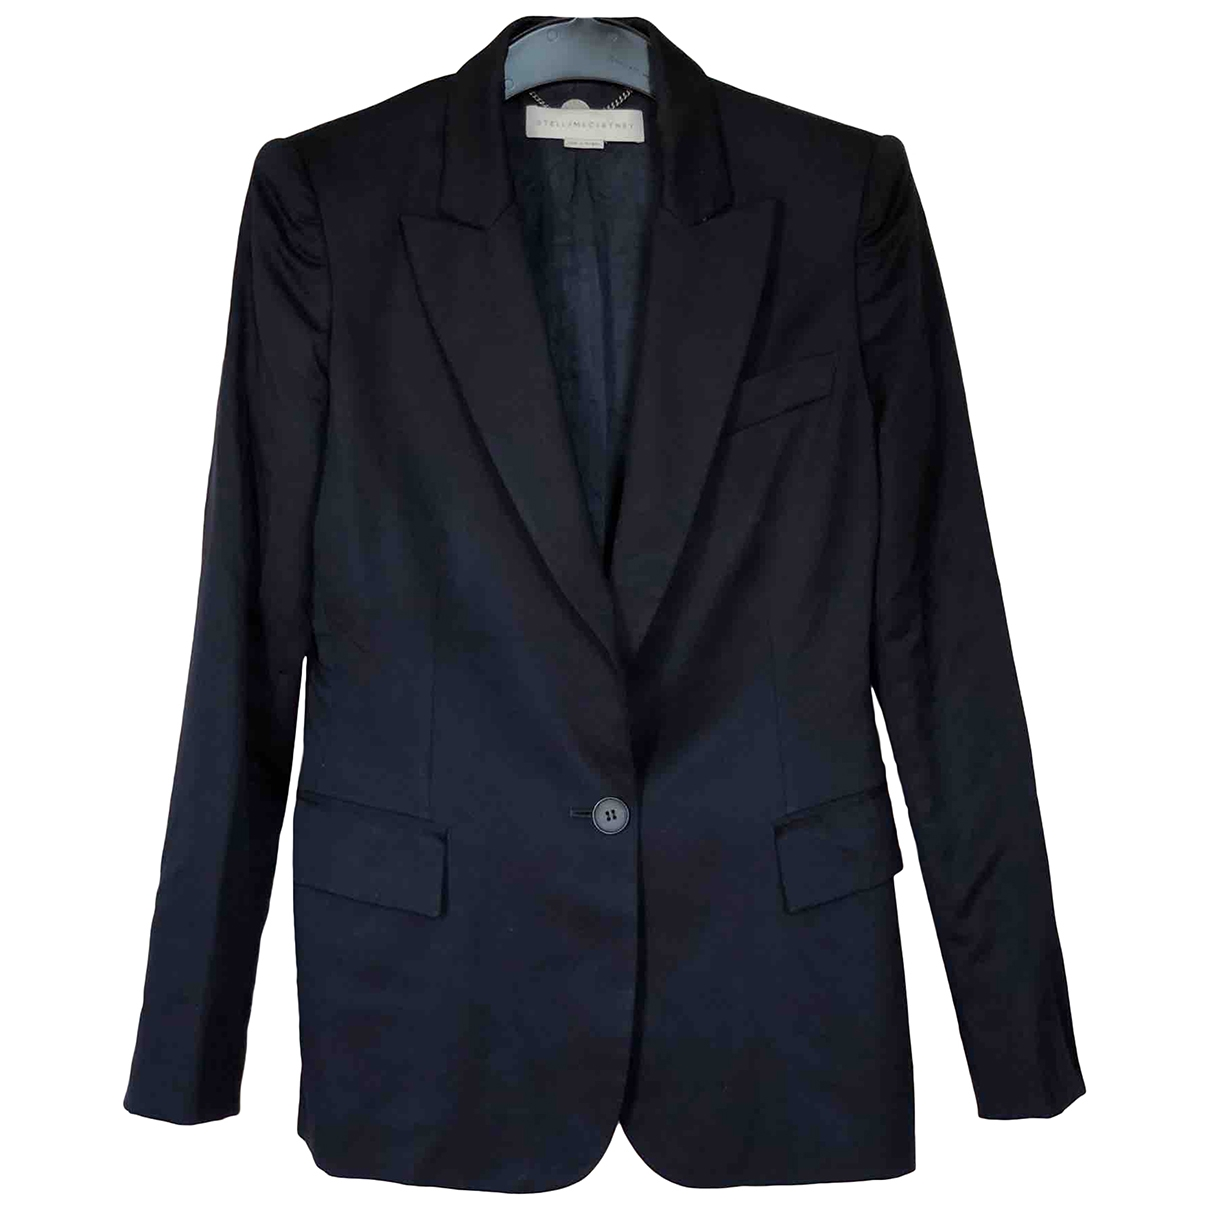 Stella Mccartney \N Blue Wool jacket for Women 36 IT